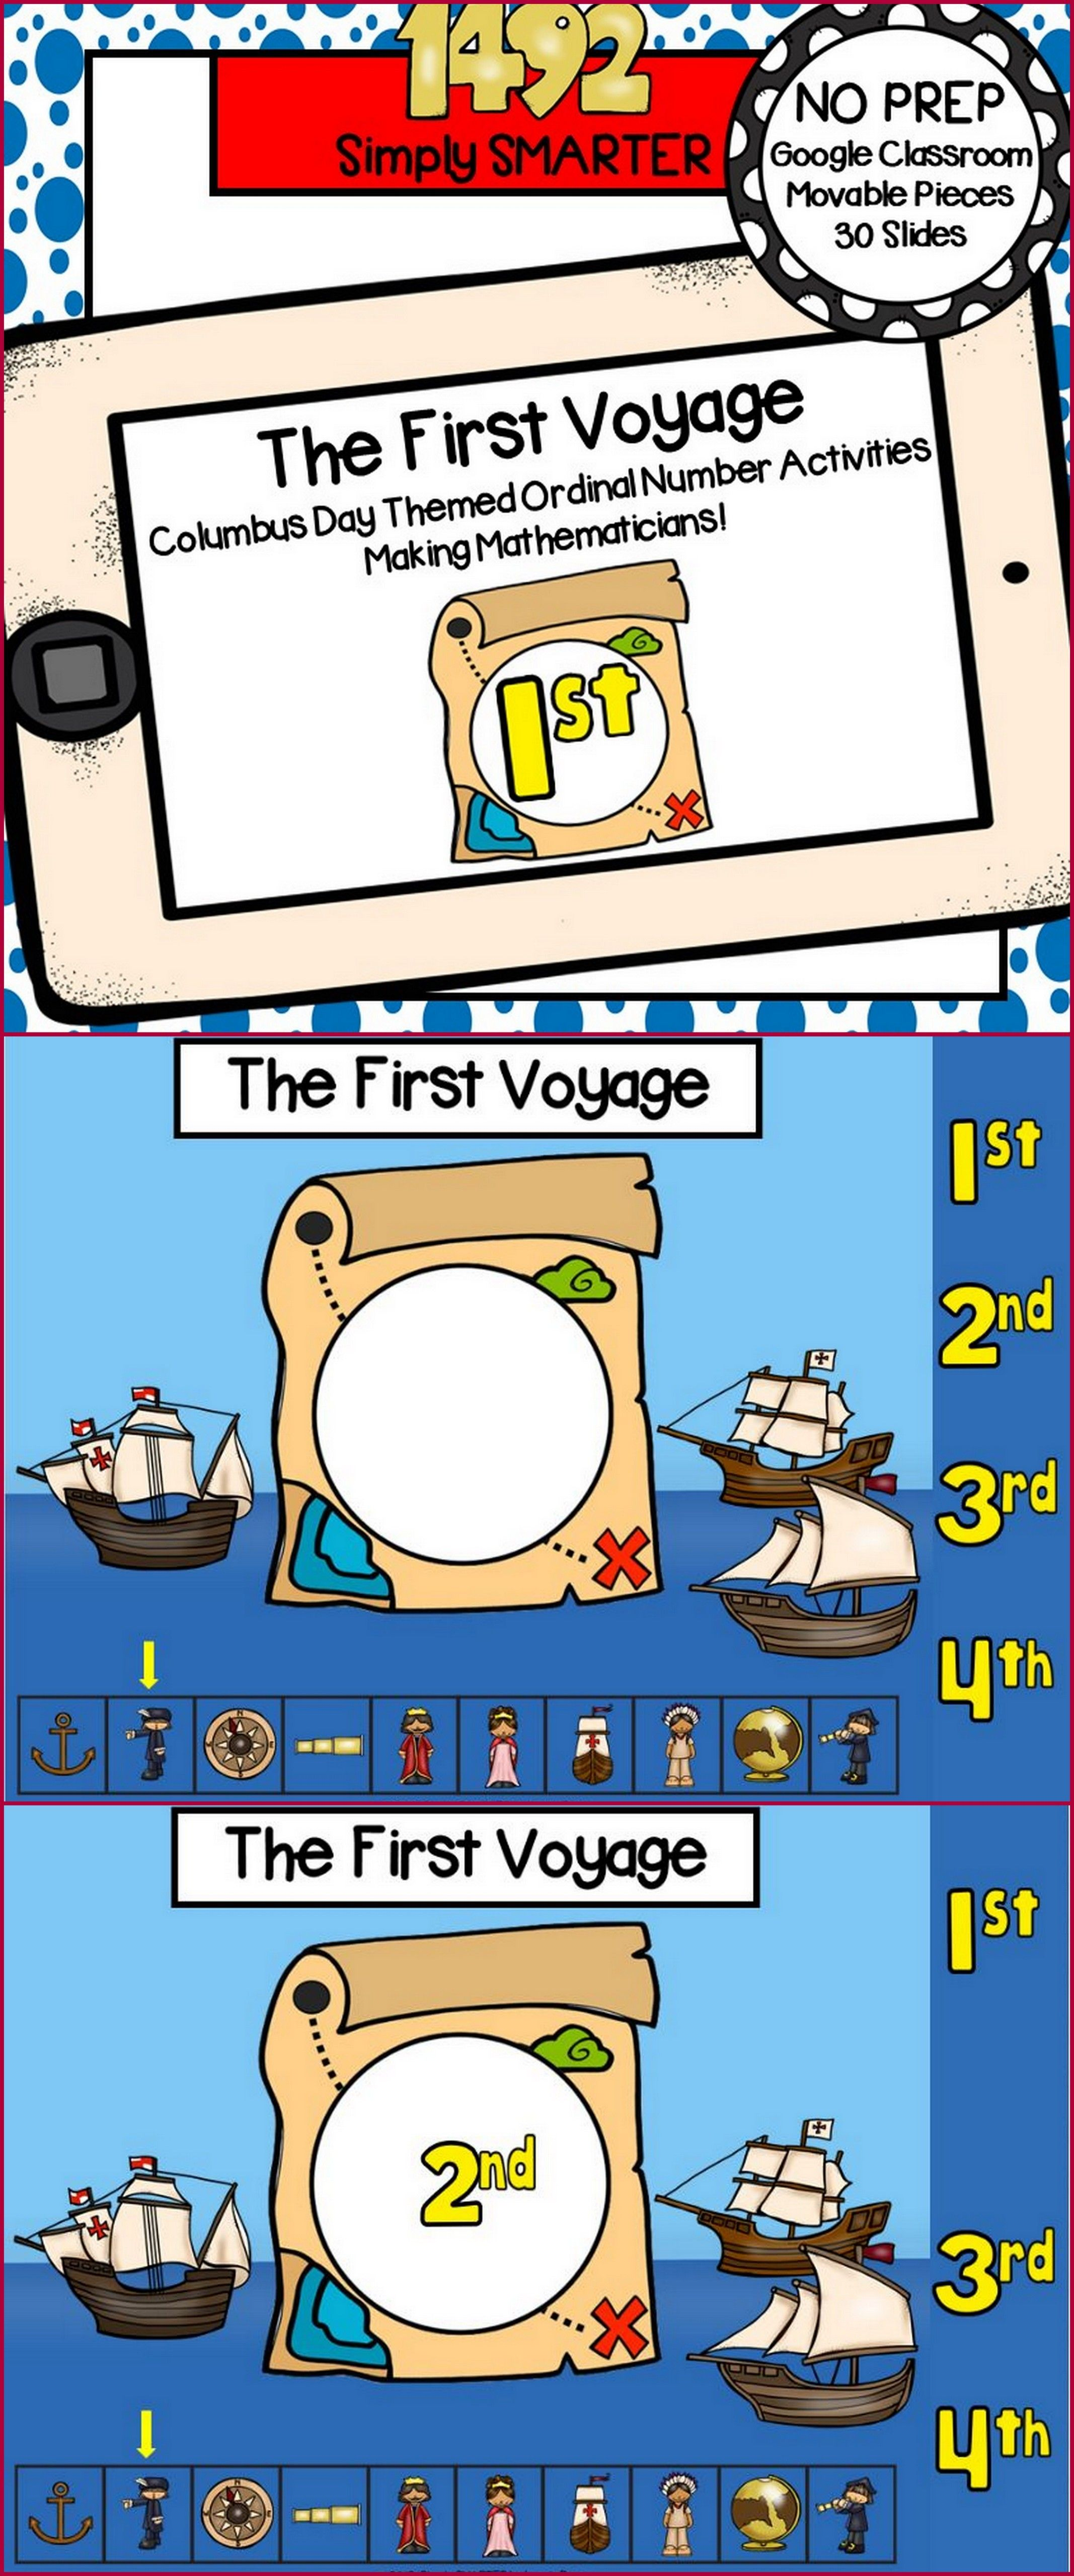 Columbus Day Themed Ordinal Number Activities For